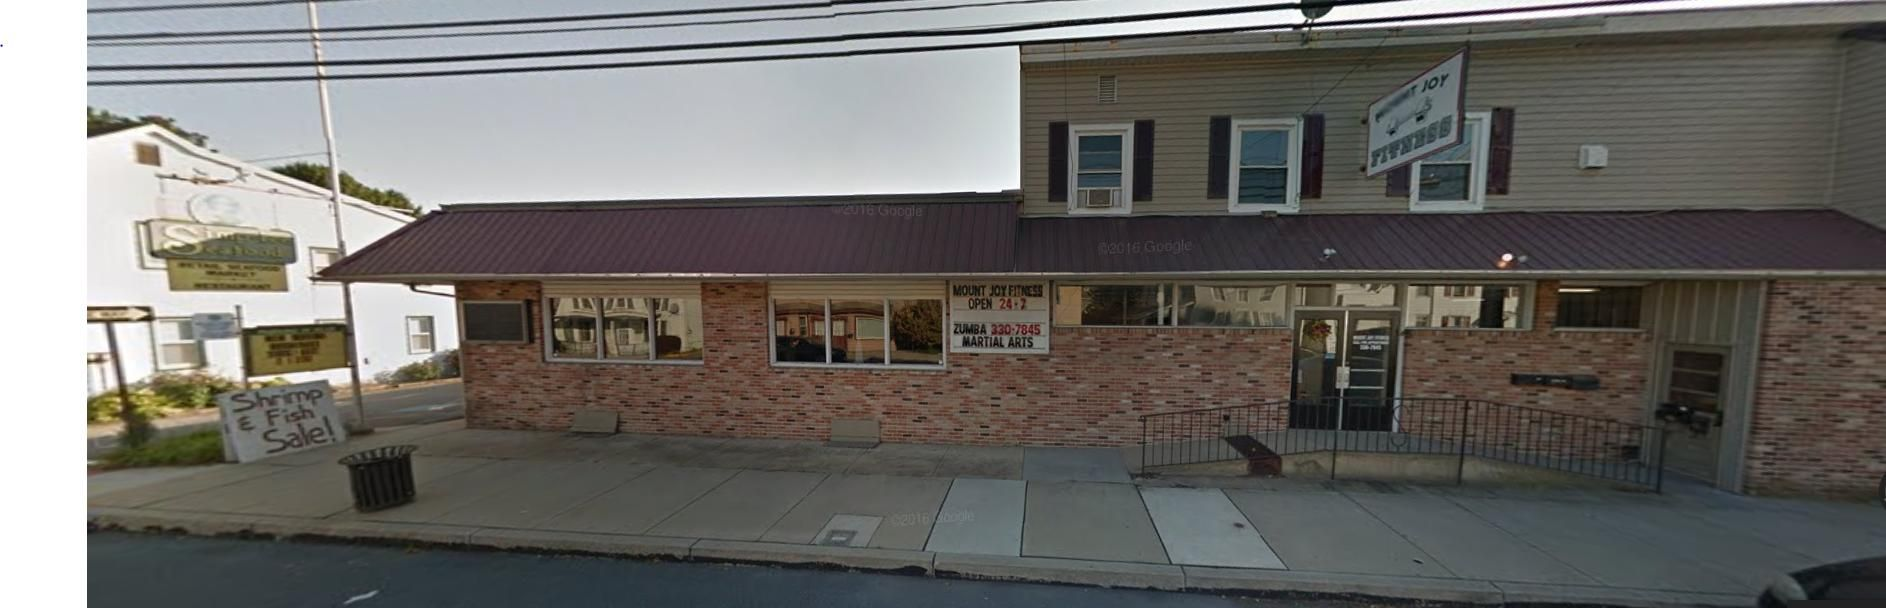 Commercial for Sale at 726 MAIN STREET Mount Joy, Pennsylvania 17552 United States